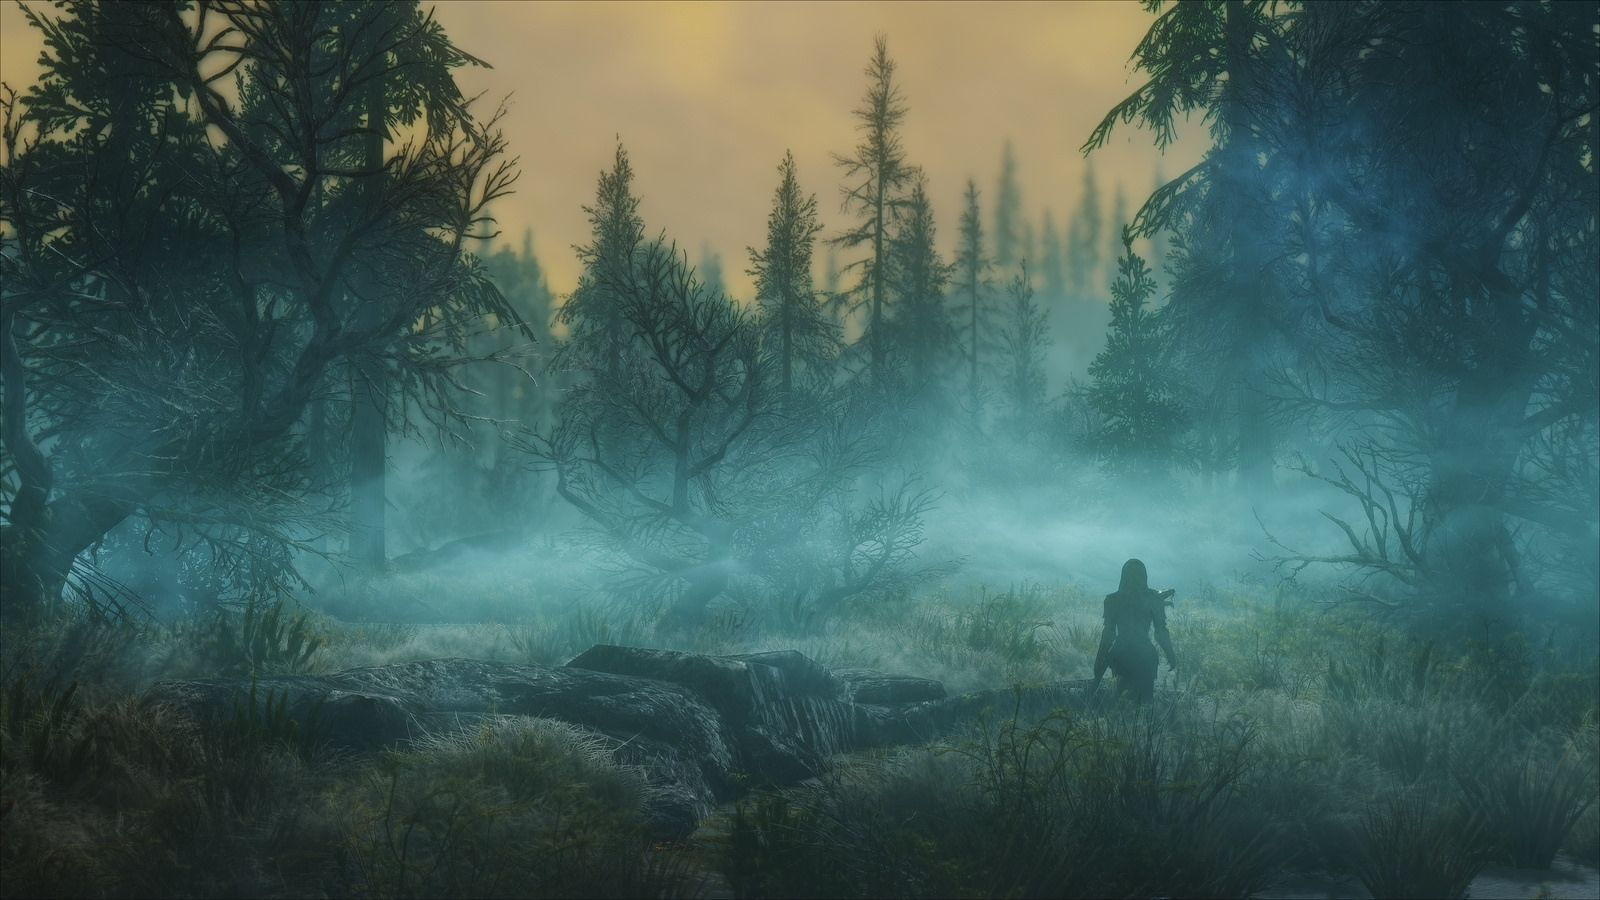 Mystic Forest Scenery Wallpaper Background Images Skyrim